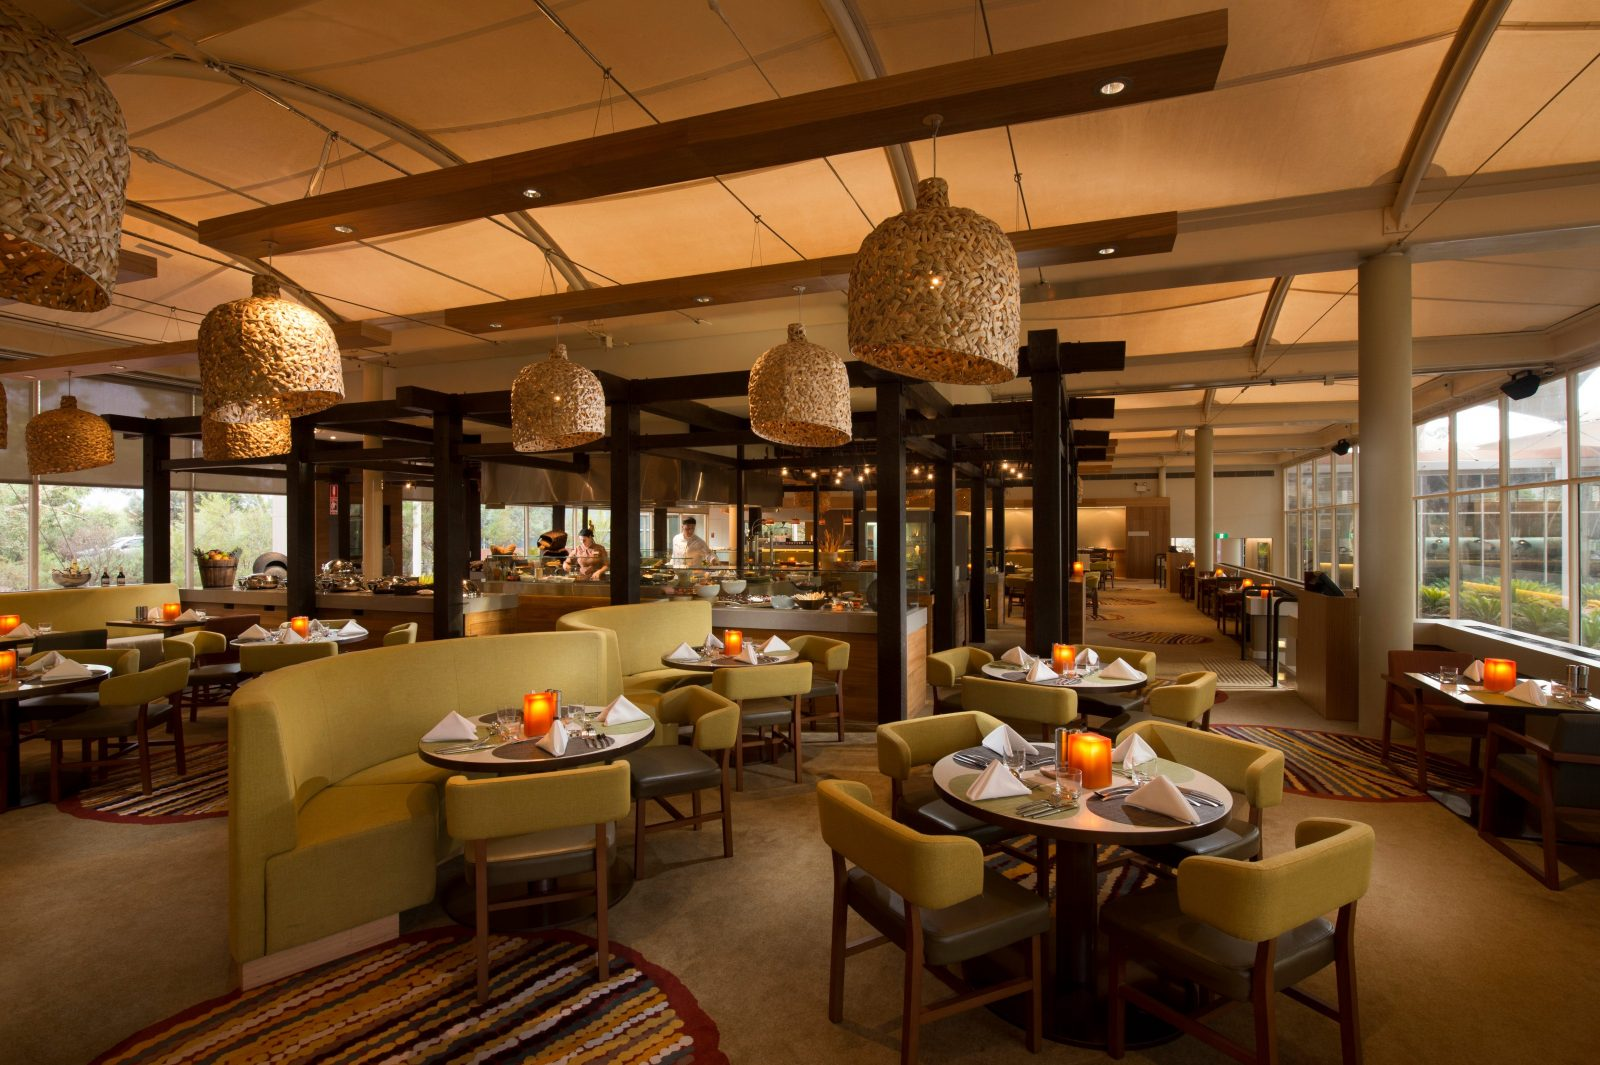 Relax and feast in the brasserie-style Ilkari Restaurant at Sails in the Desert.